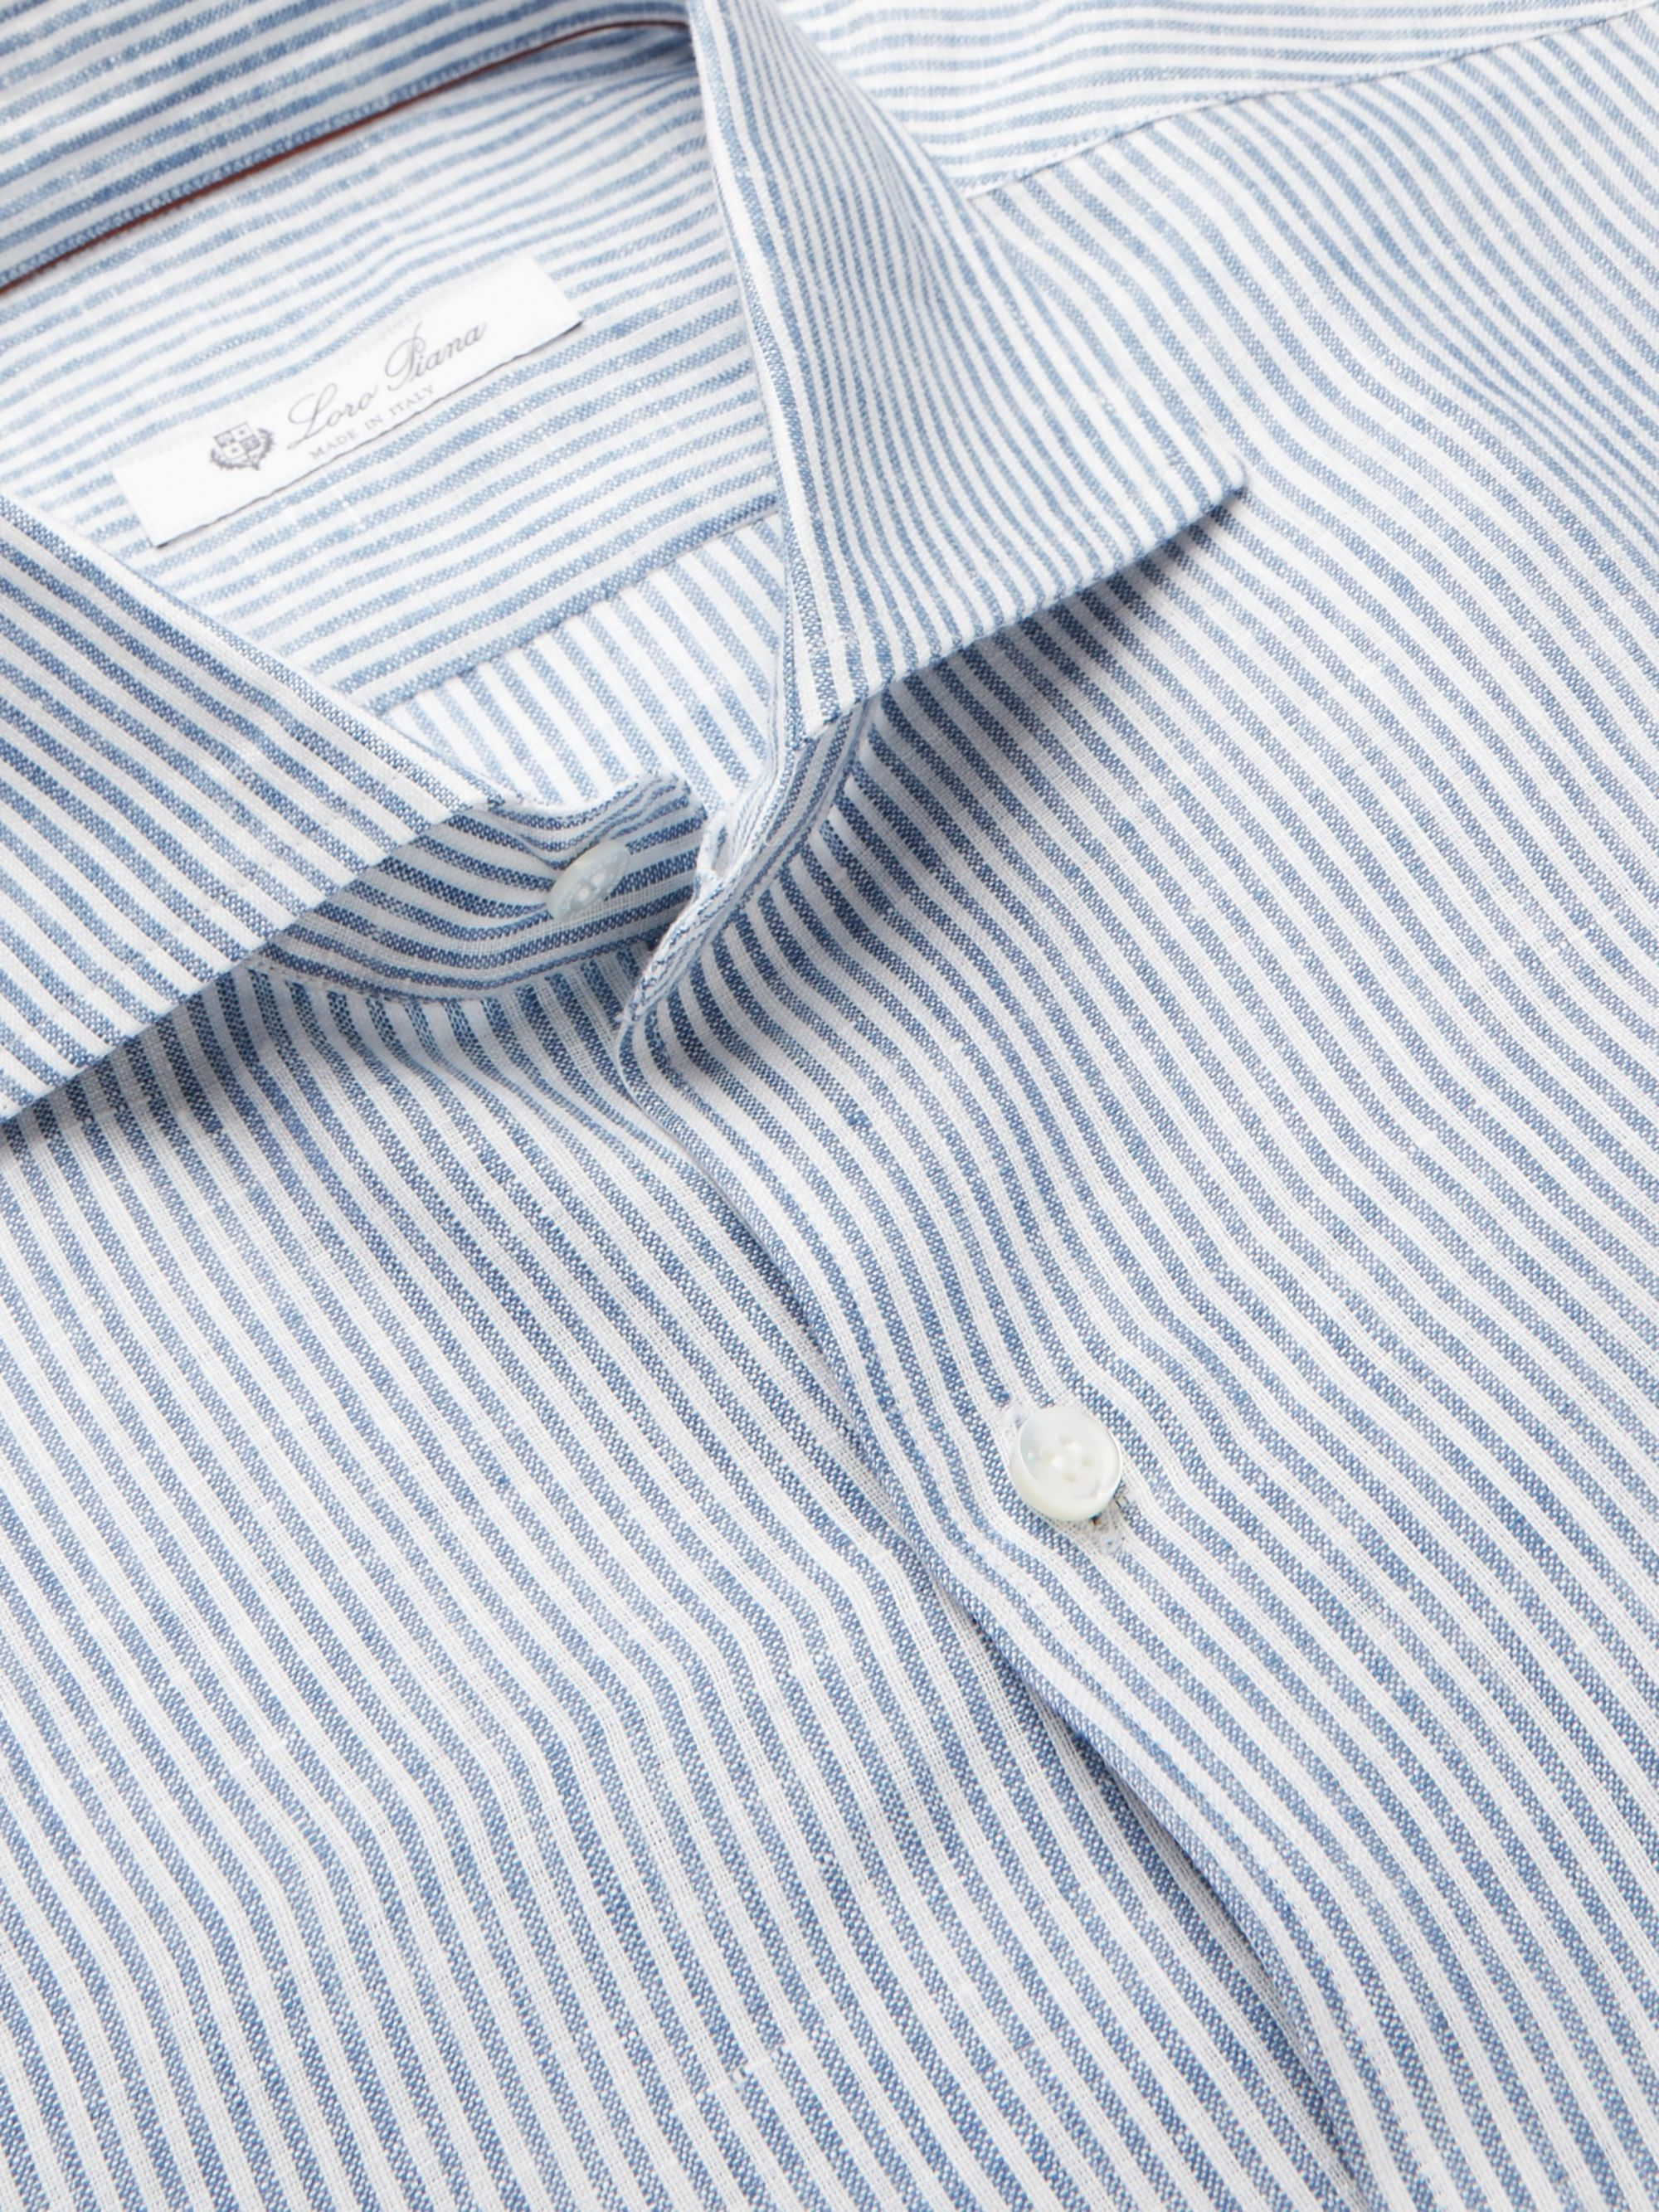 Loro Piana Albert Slim-Fit Cutaway-Collar Striped Linen Shirt